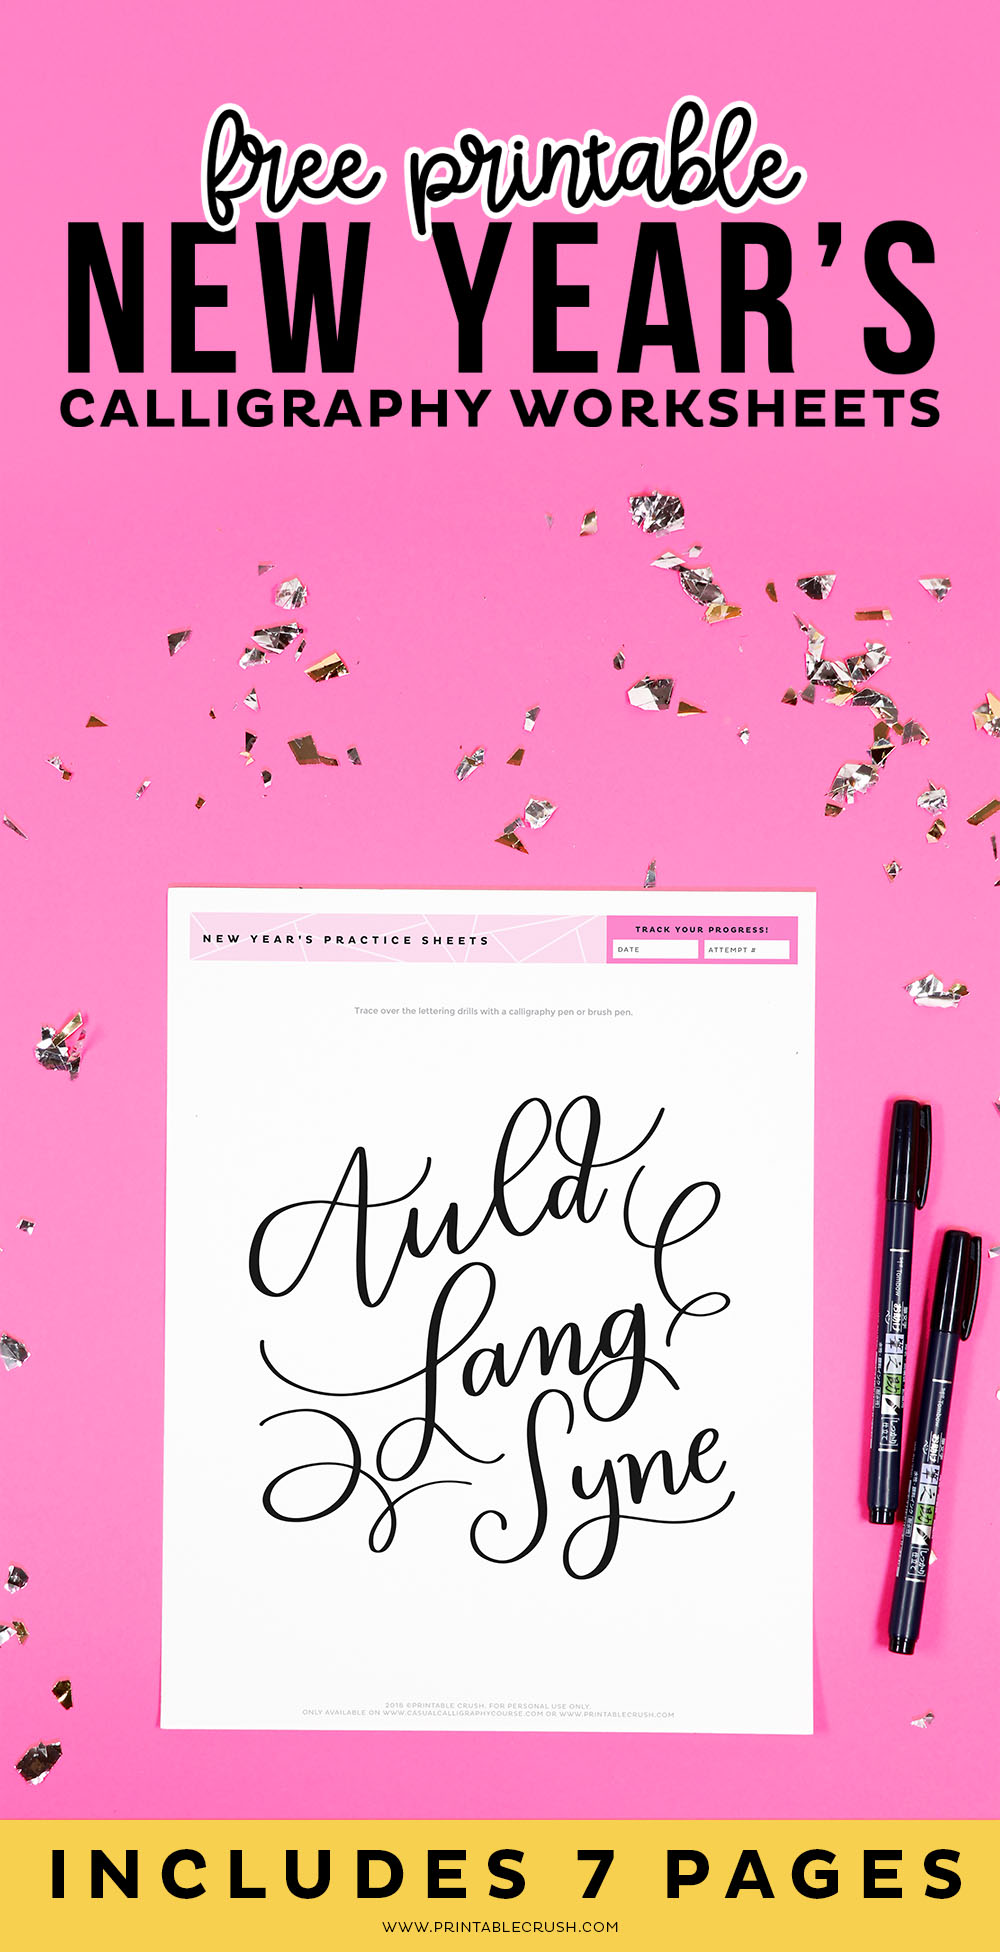 Free Printable New Year's Calligraphy Worksheets - Auld Lang Syne Calligraphy Practice - Printable Crush